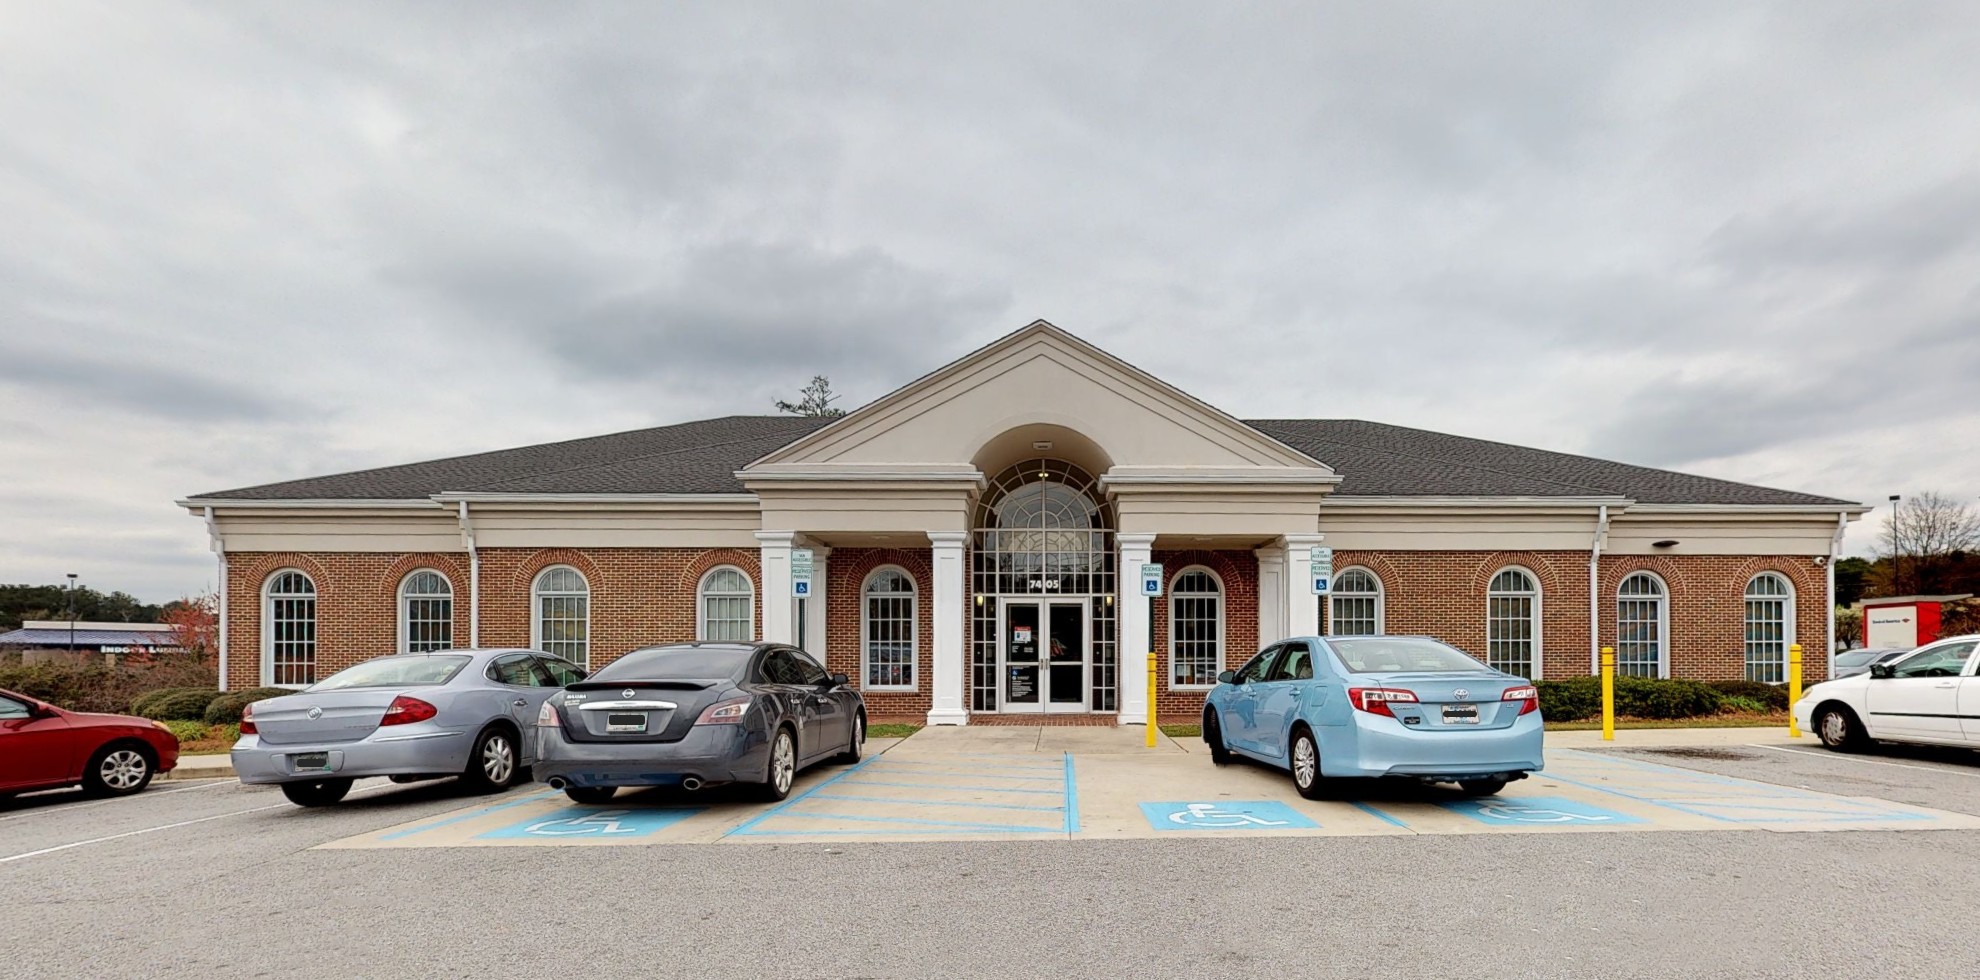 Bank of America financial center with drive-thru ATM | 7405 Two Notch Rd, Columbia, SC 29223